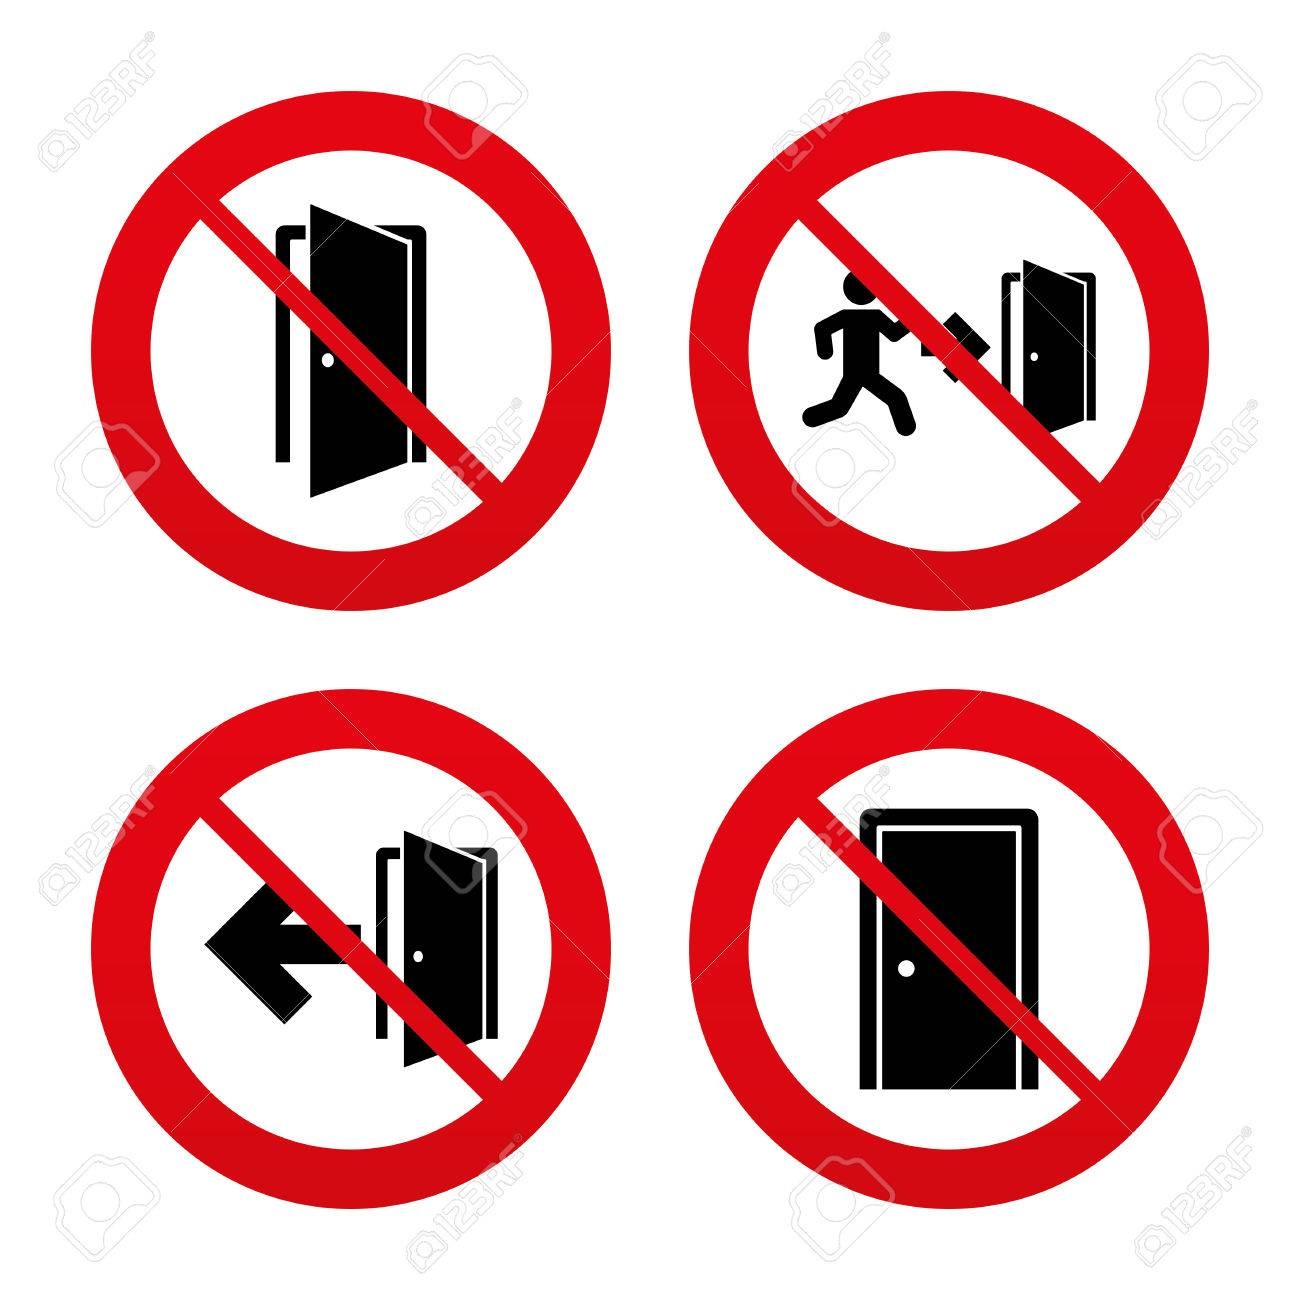 no ban or stop signs doors icons emergency exit with human figure and